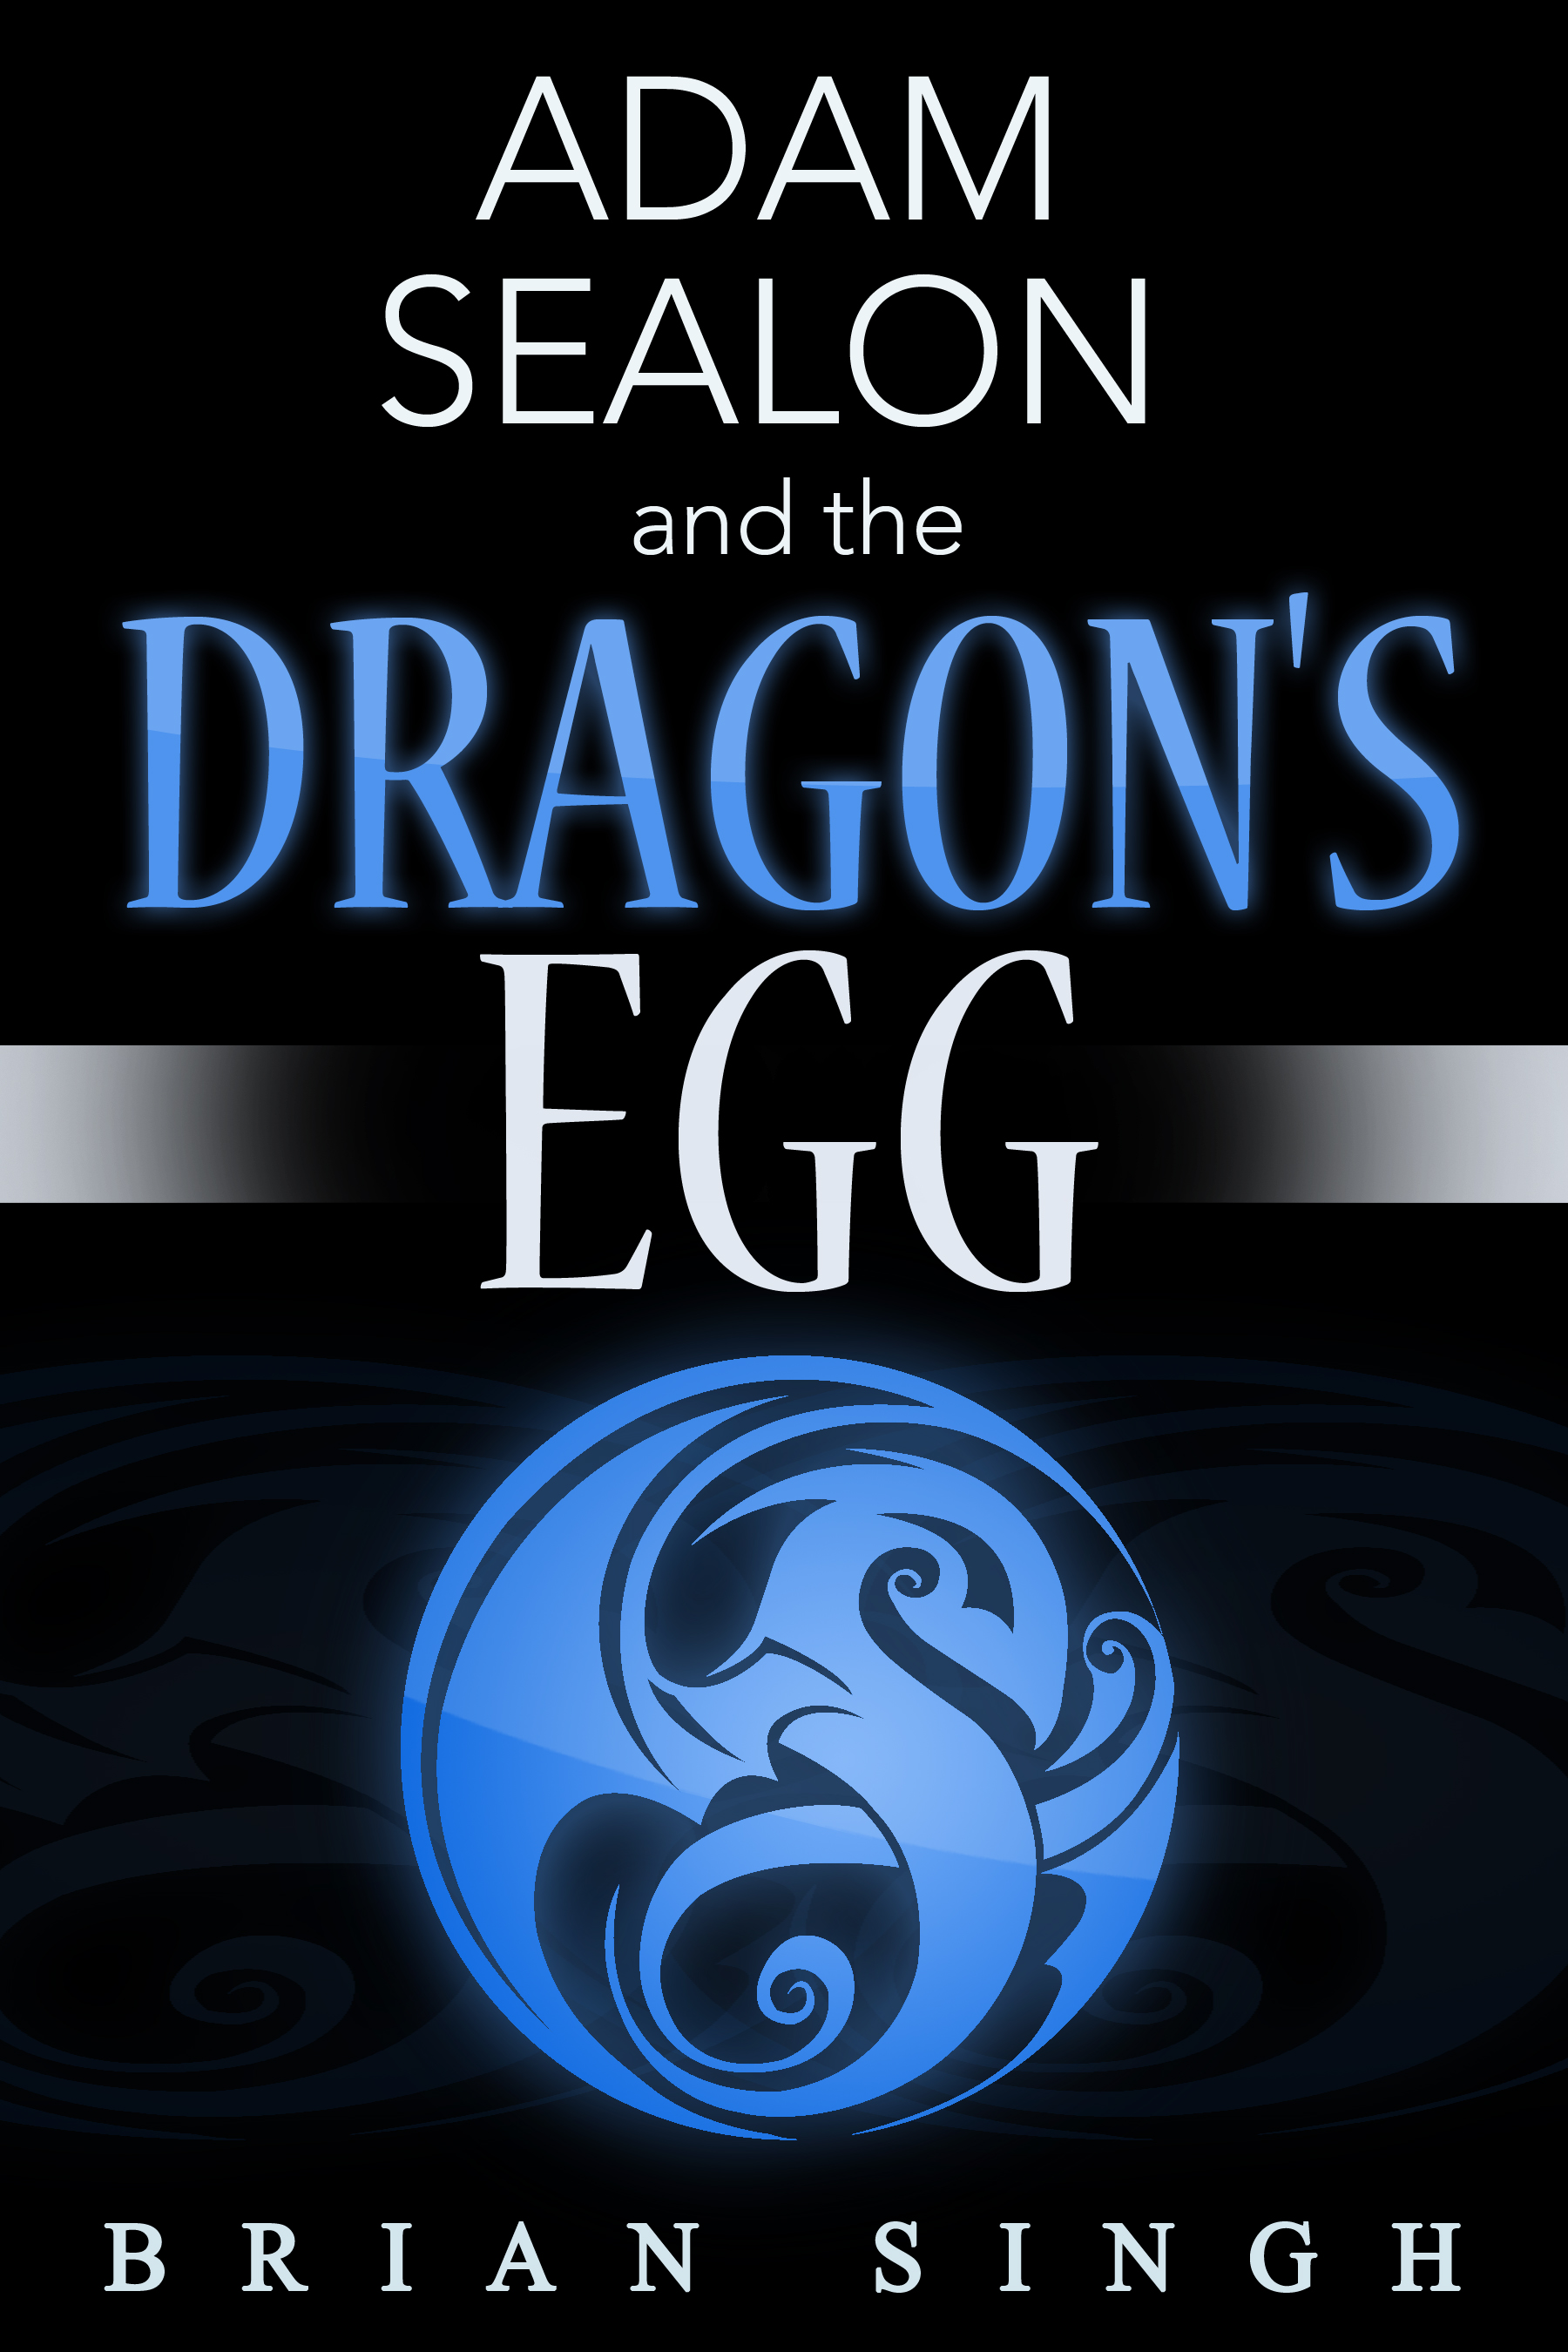 Adam_Sealon_and_the_Dragons_Egg